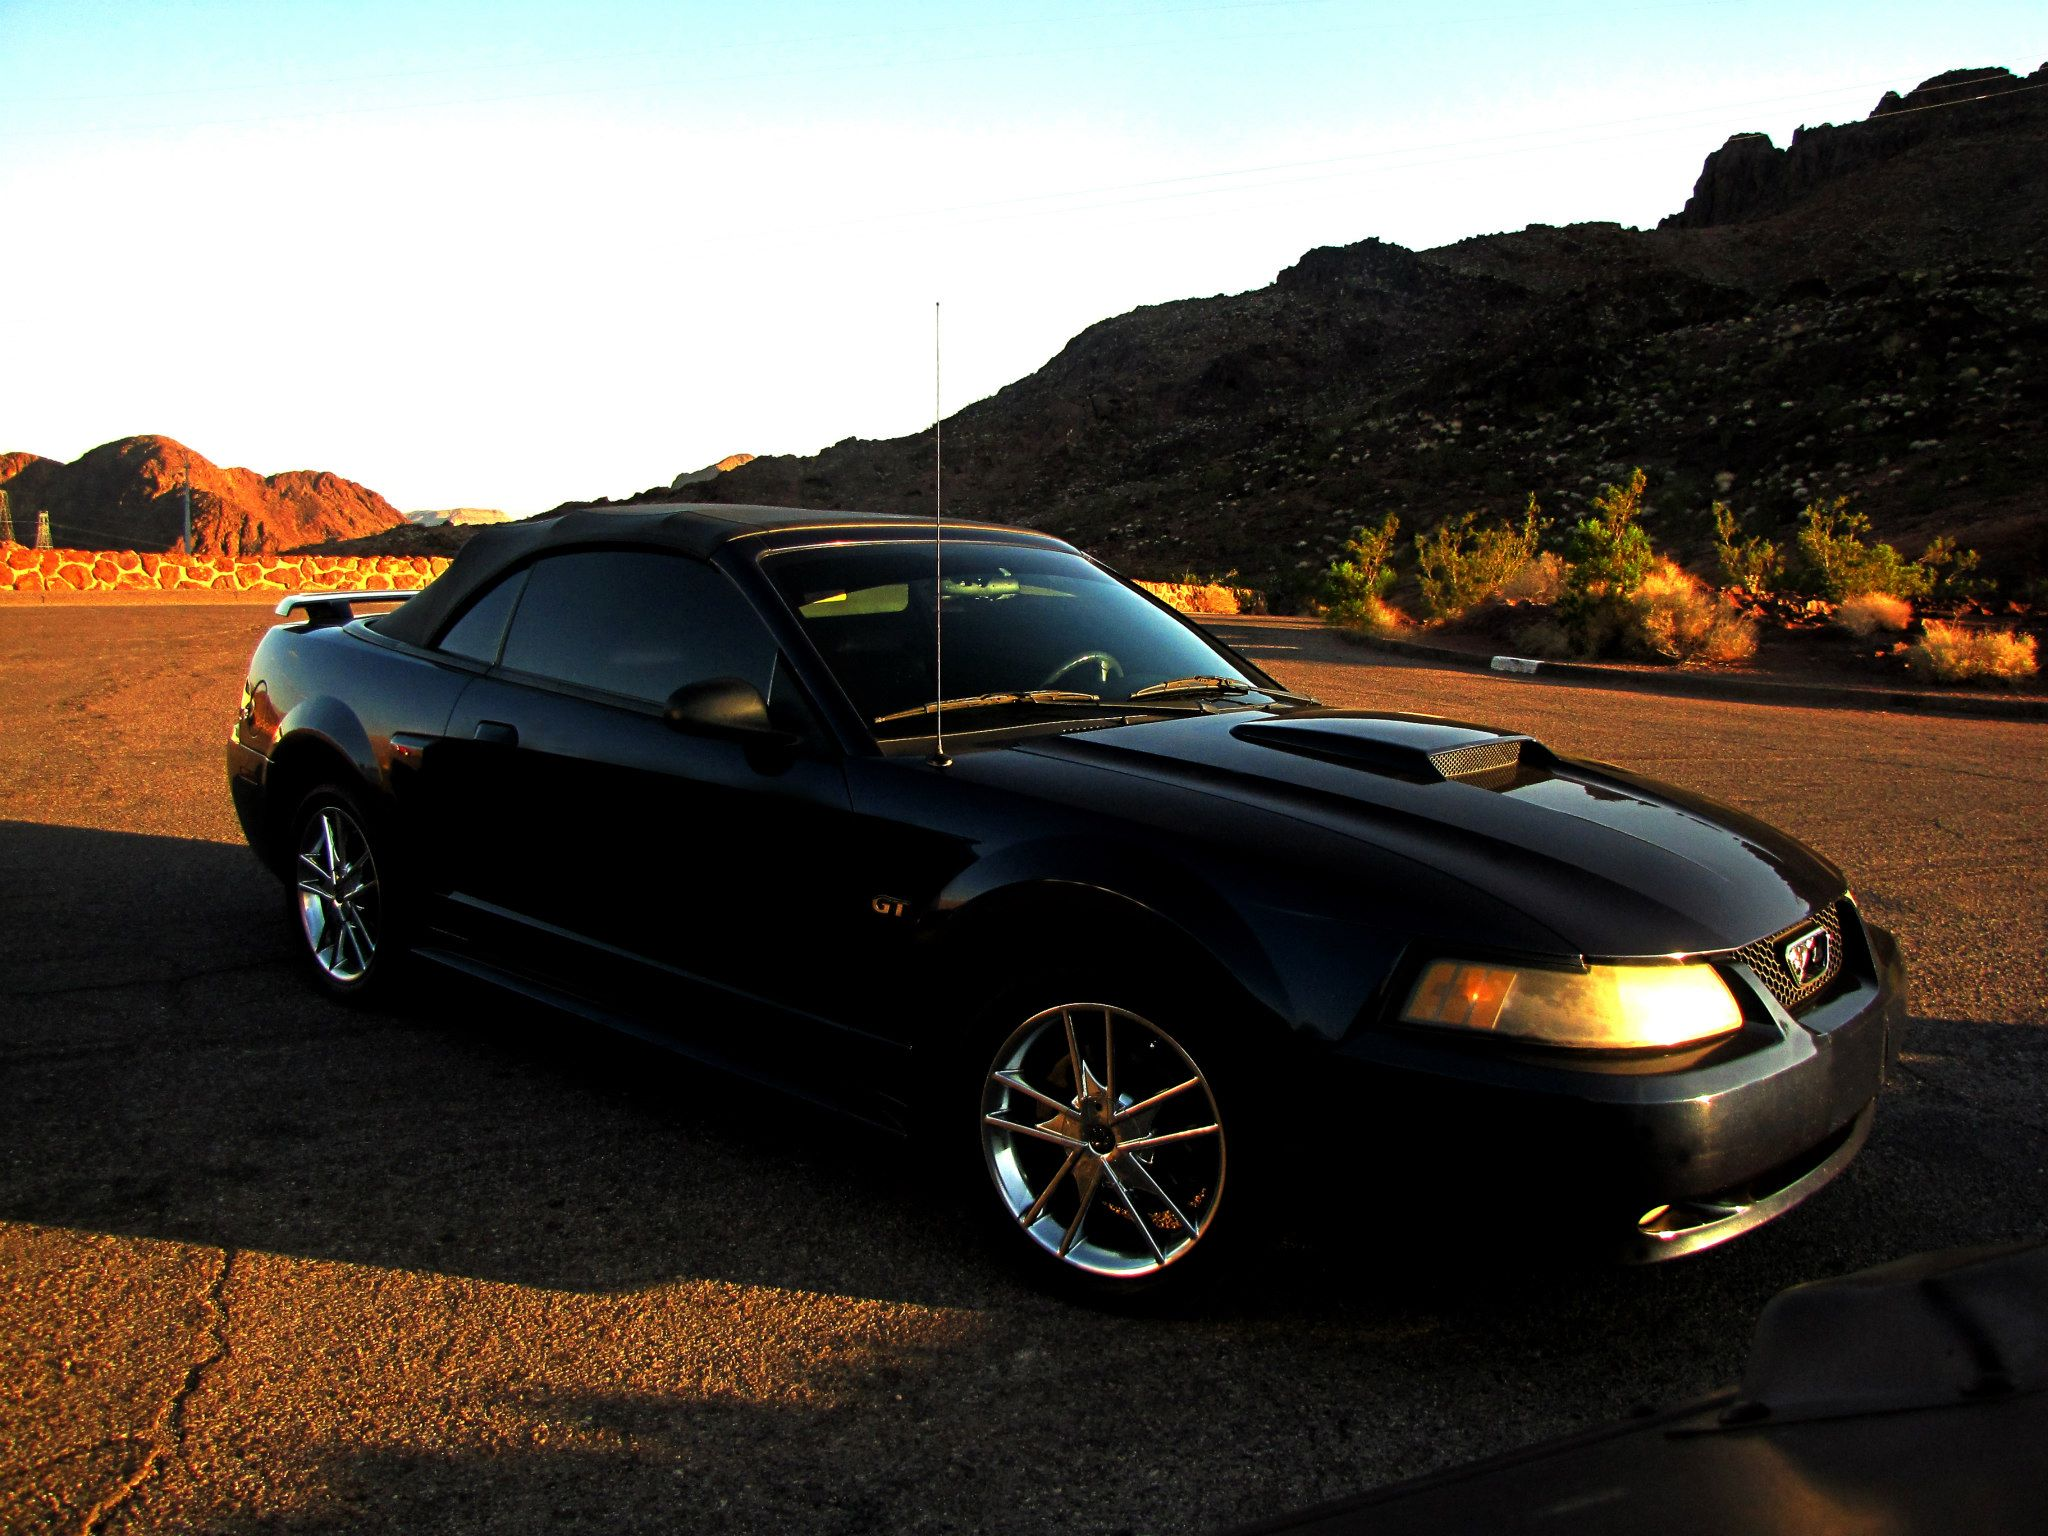 2002 MUSTANG GT PICTURE CAR